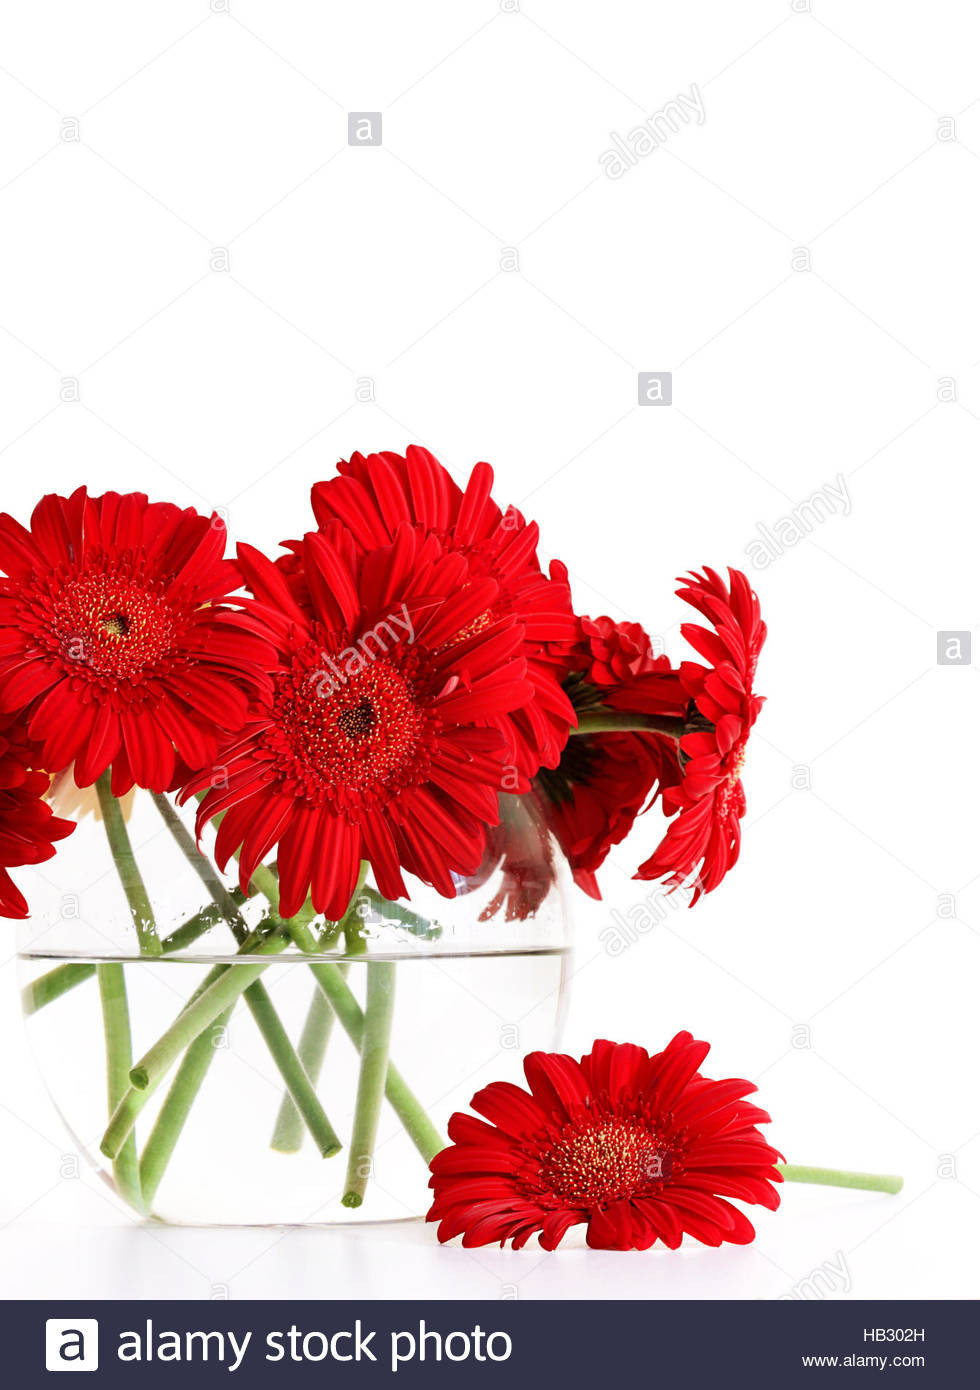 clear heart shaped vase of red glass vase photos single red glass vase isolated stock s intended for red glass vase pics closeup od red gerber daisies in glass vase stock of red glass